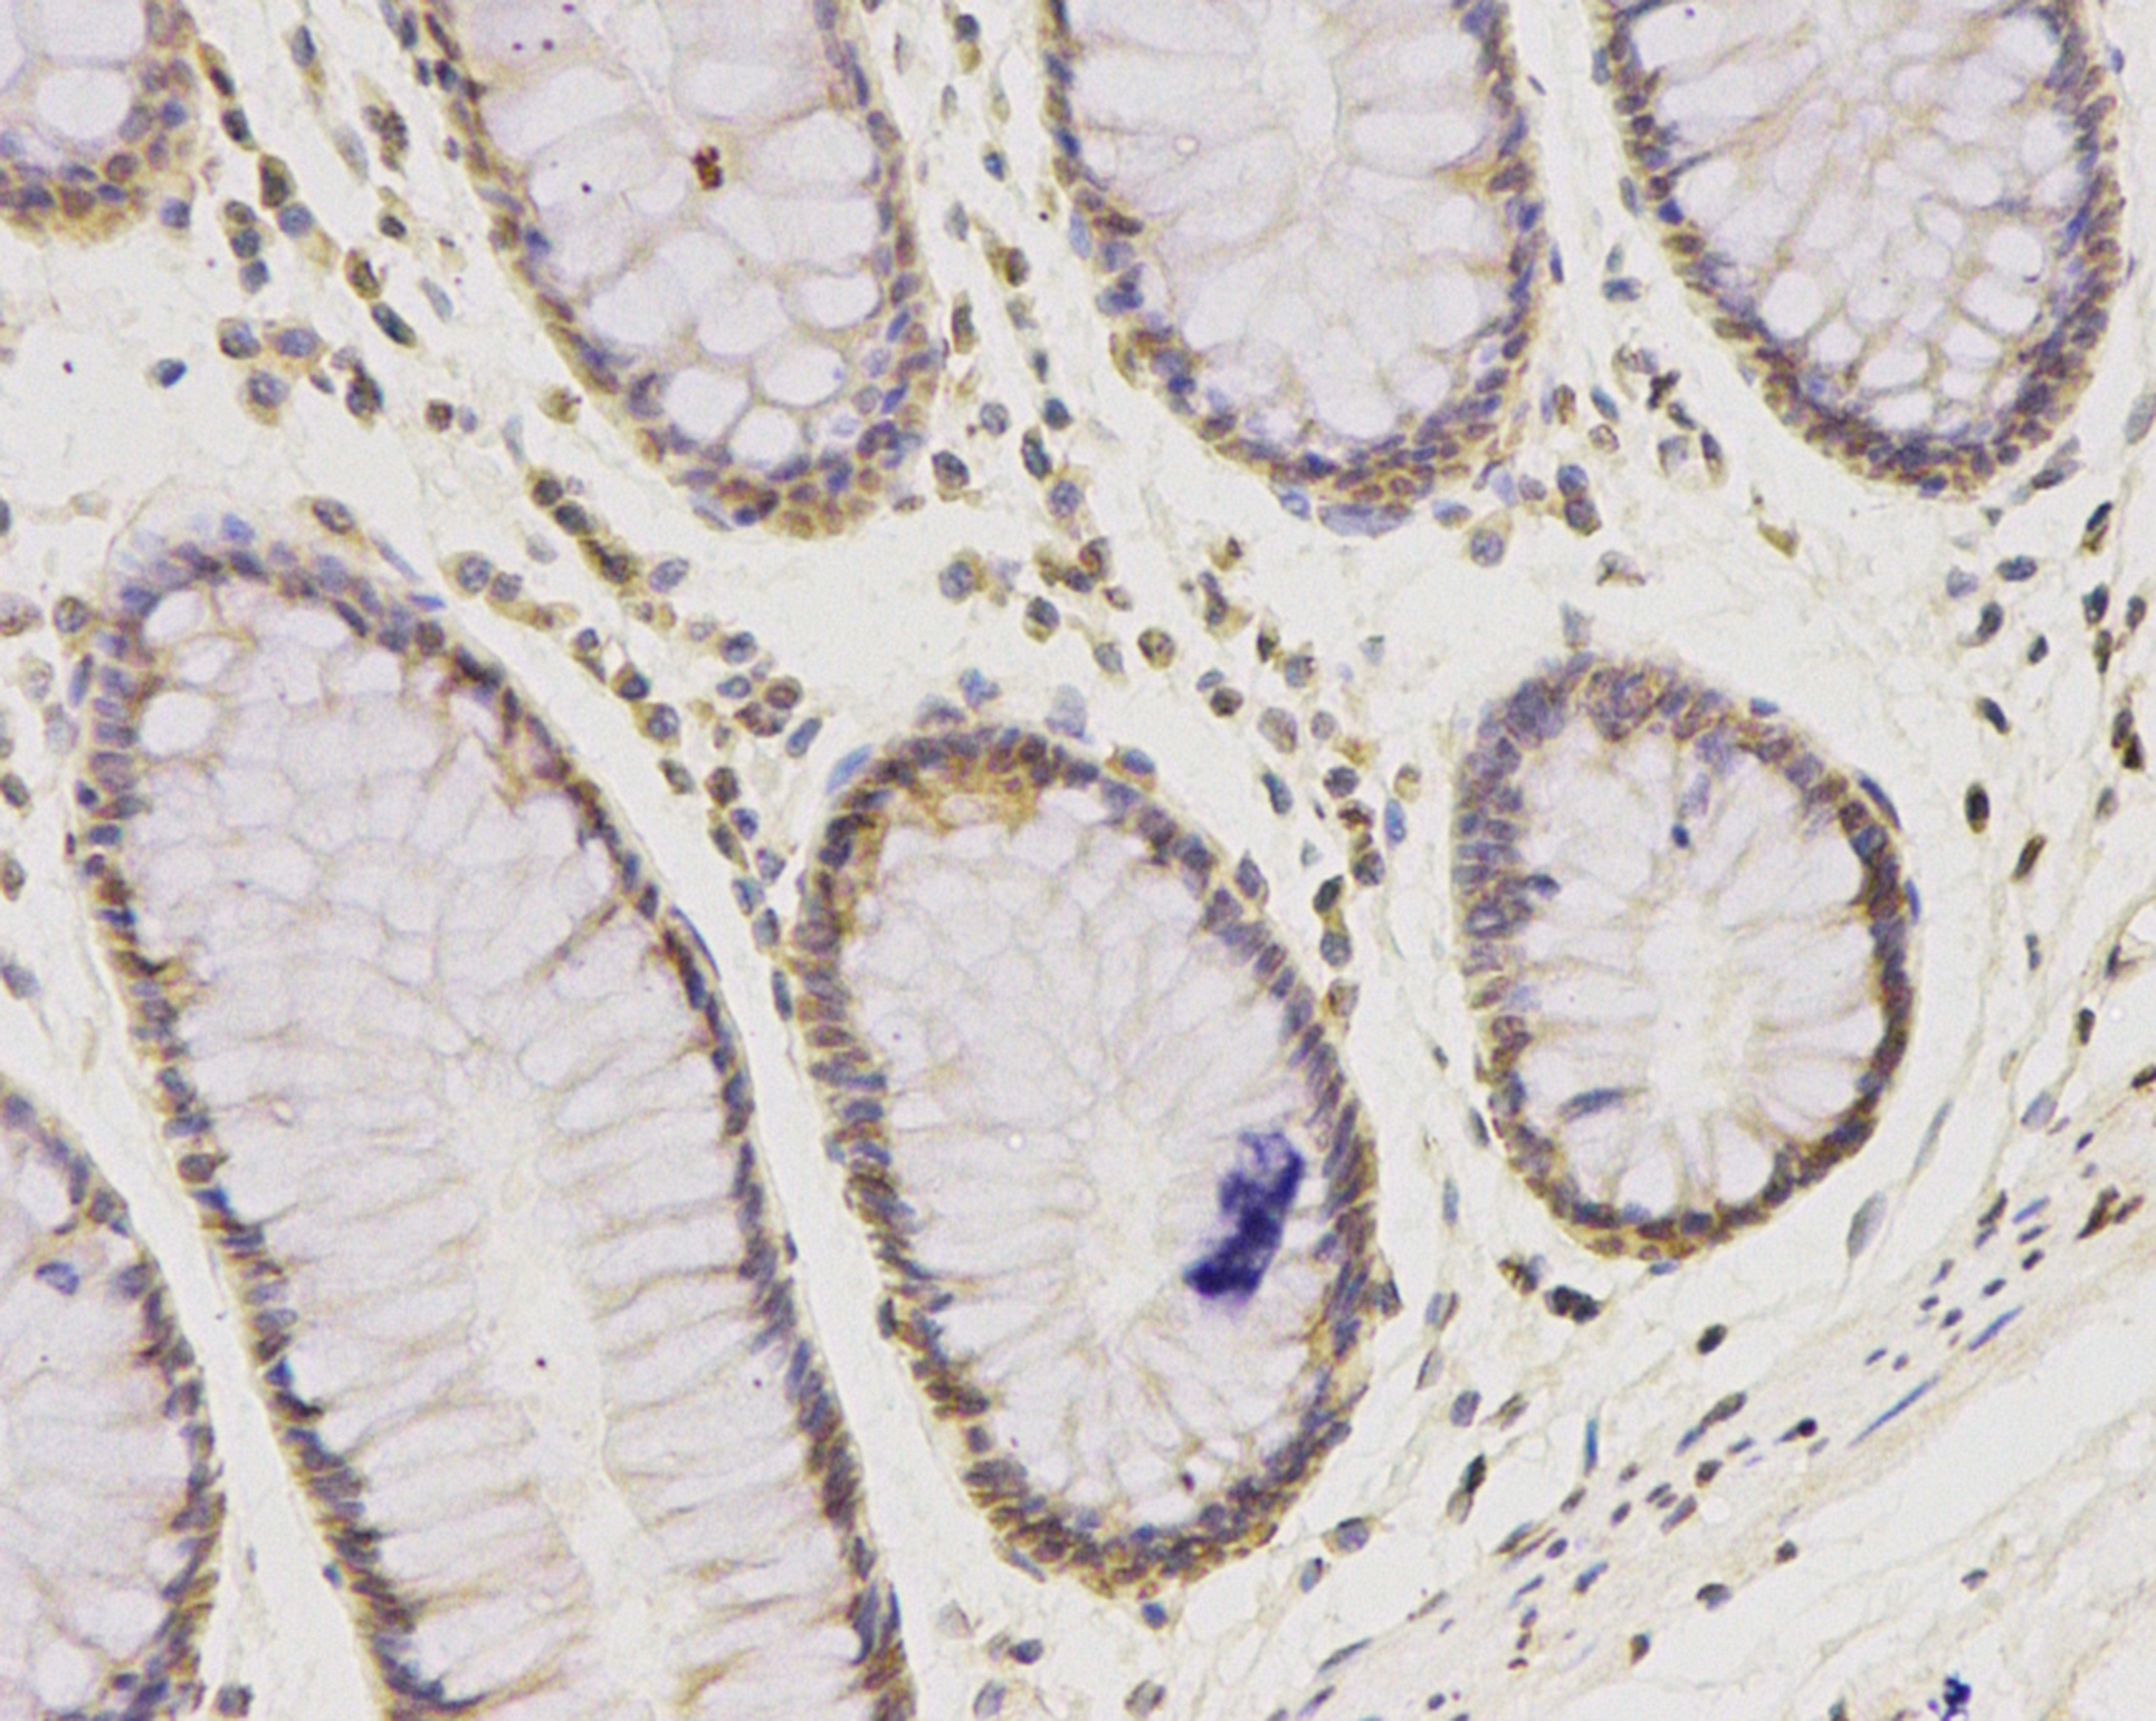 Immunohistochemical analysis of paraffin-embedded human colon tissue using anti- IFNAR1 antibody. Counter stained with hematoxylin.